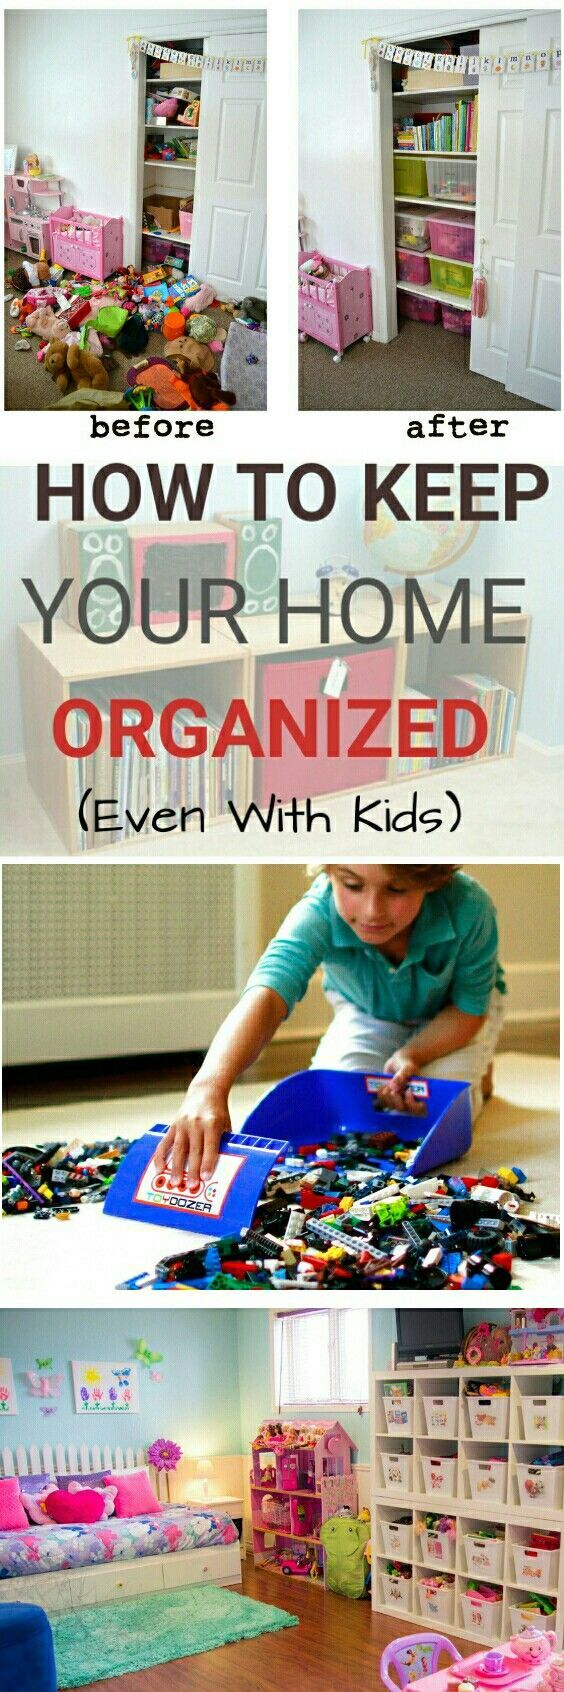 11 Tips For Keeping Kids Toys Organized: 7 Daily Habits To Keep Your Home Organized Even With Kids